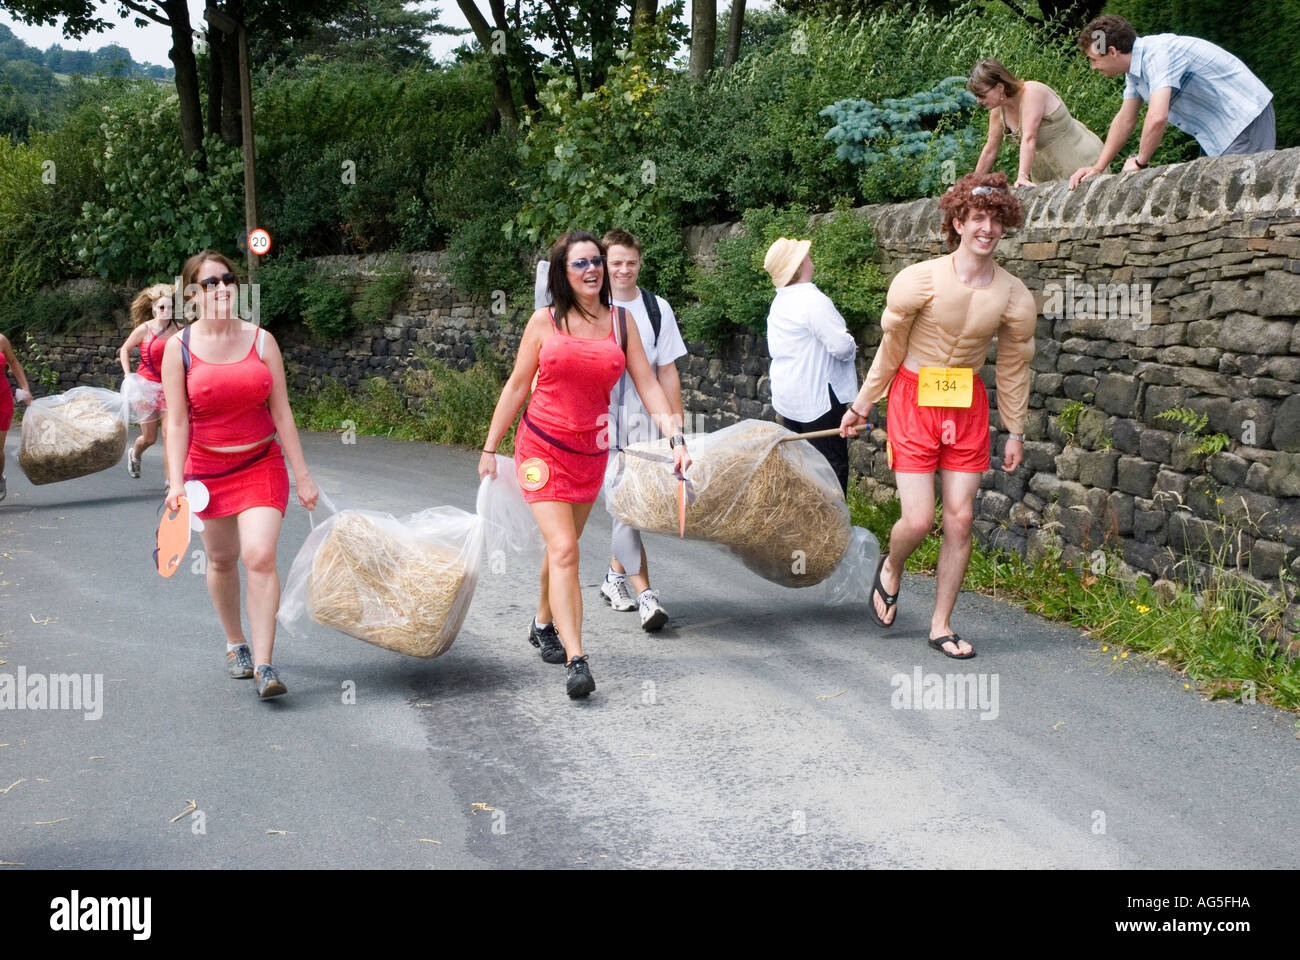 Runners caveman fancy dress for the Oxenhope Straw Race - Stock Image